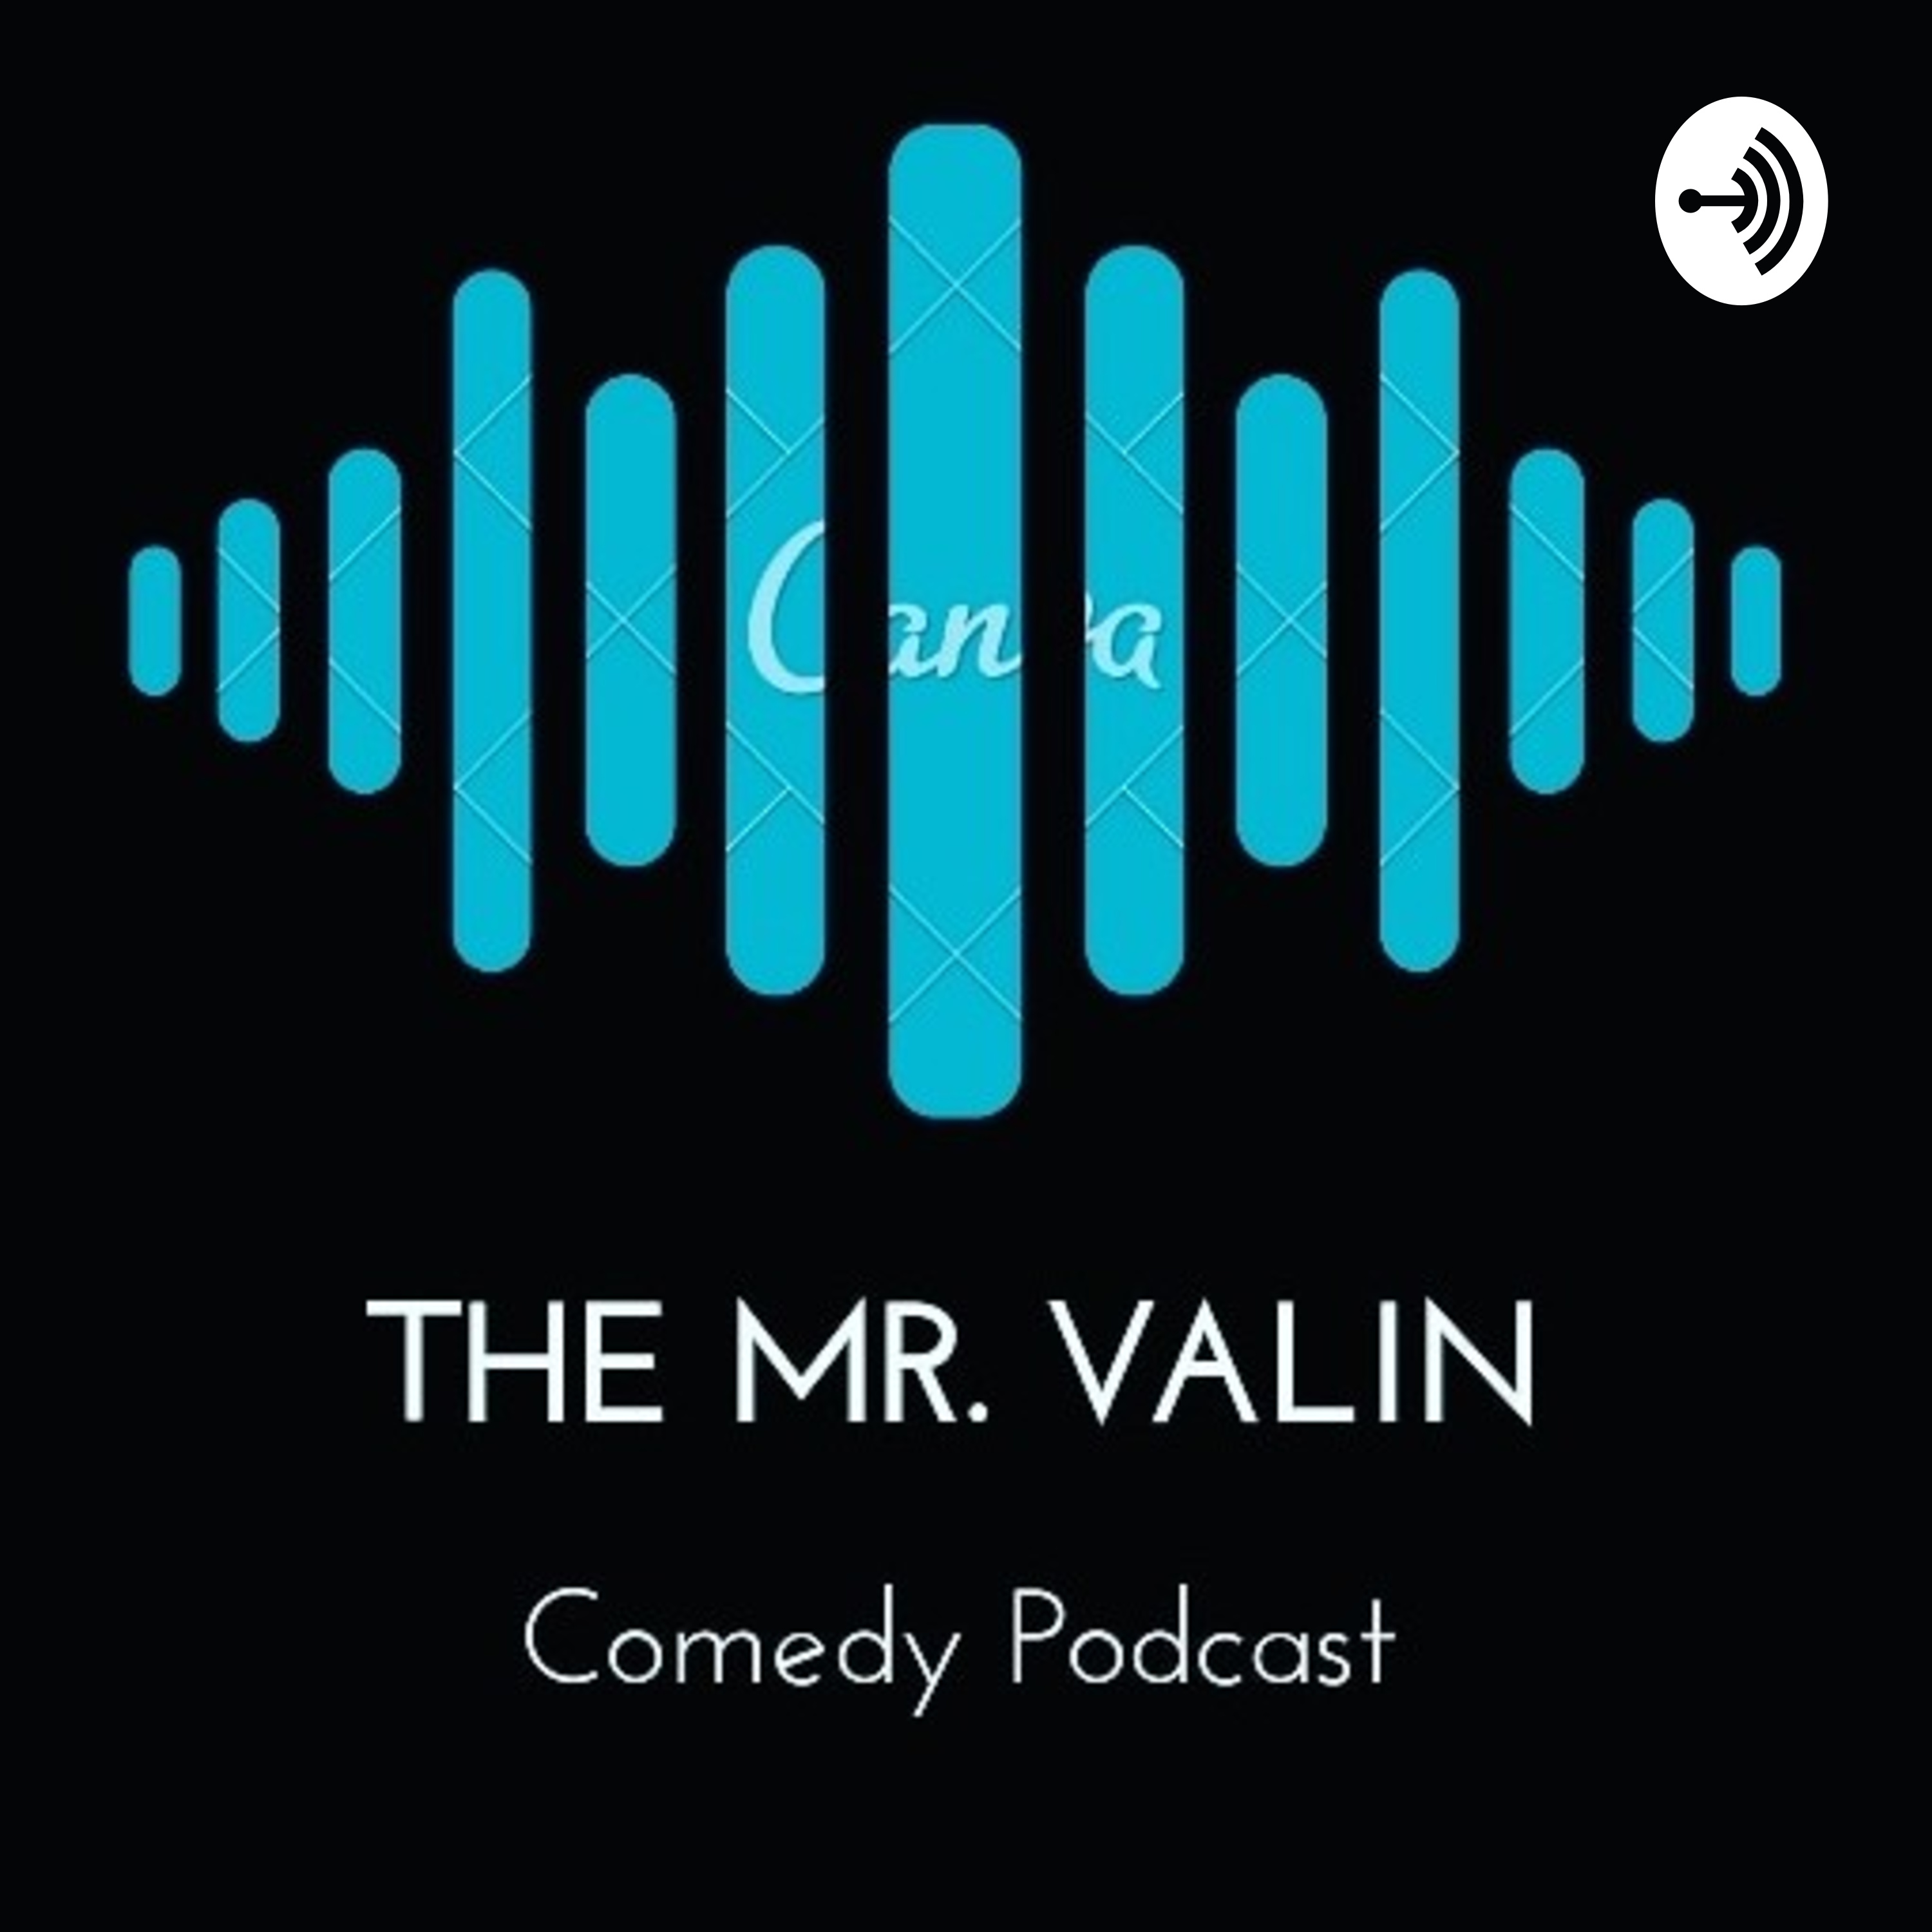 TheMrValin Comedy Podcast Ep: 14 (Judging people)